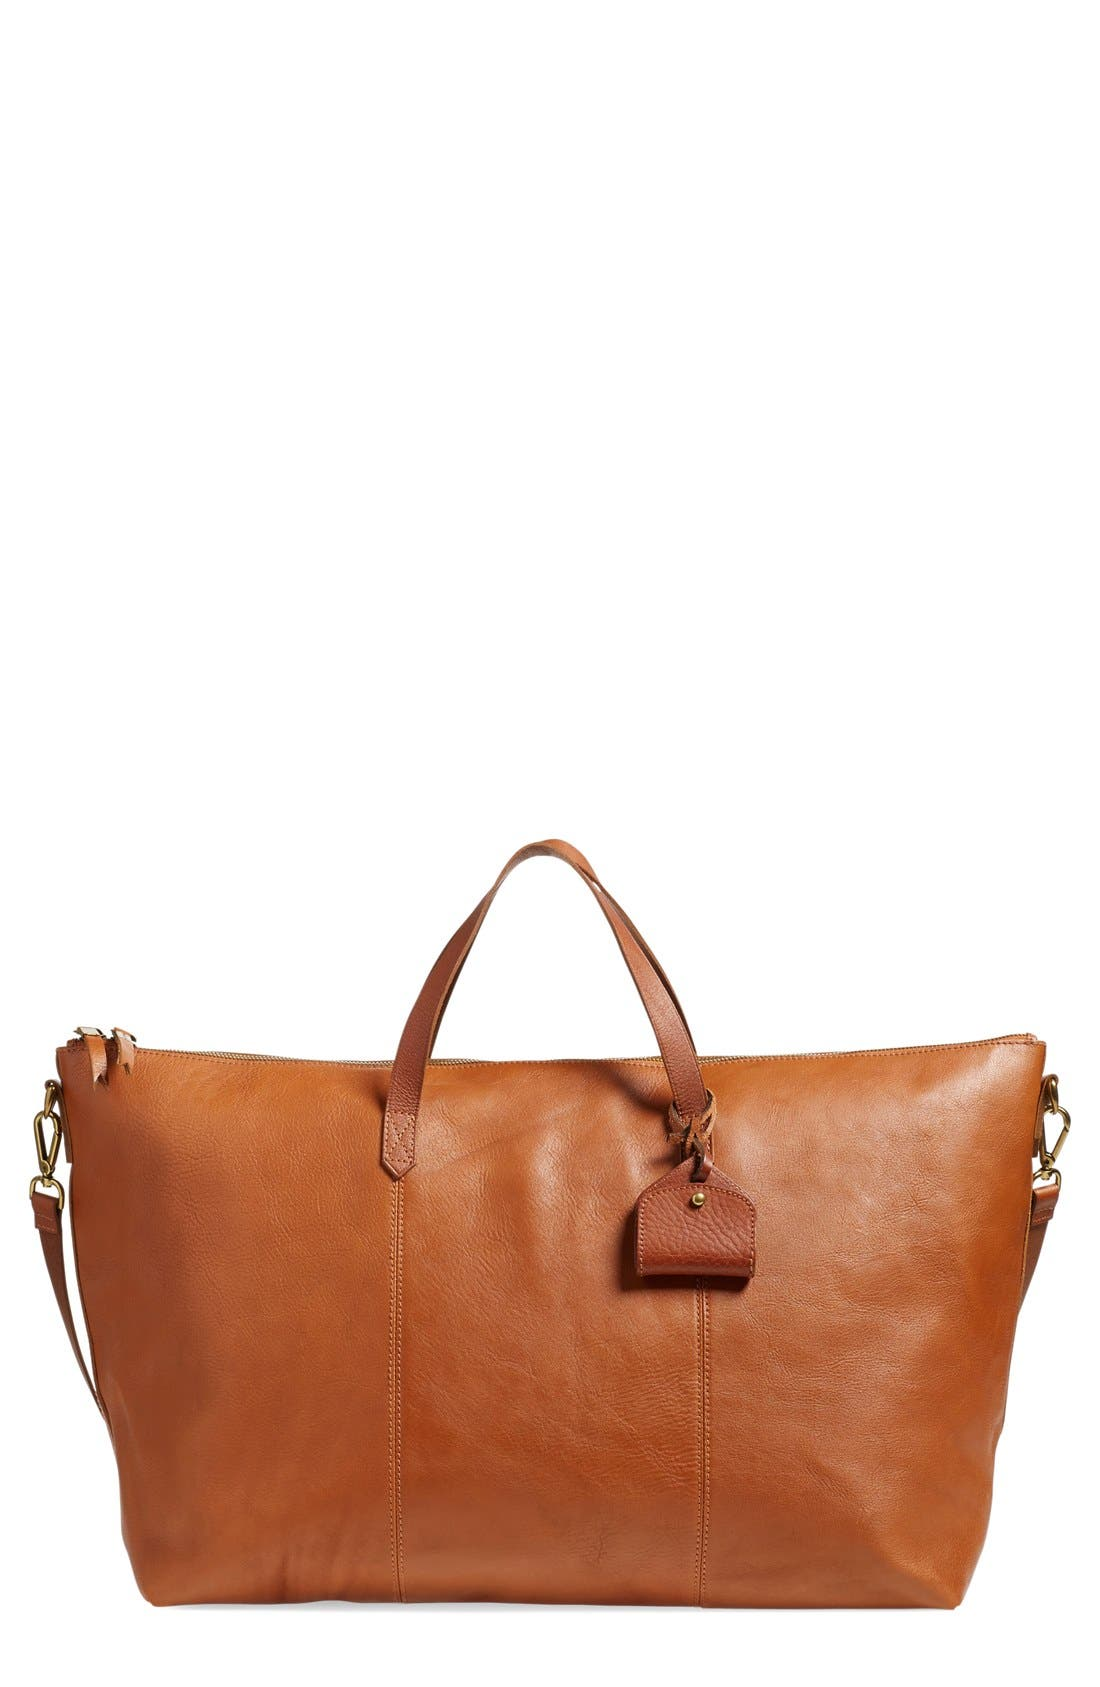 'Transport' Weekend Bag,                         Main,                         color, 200